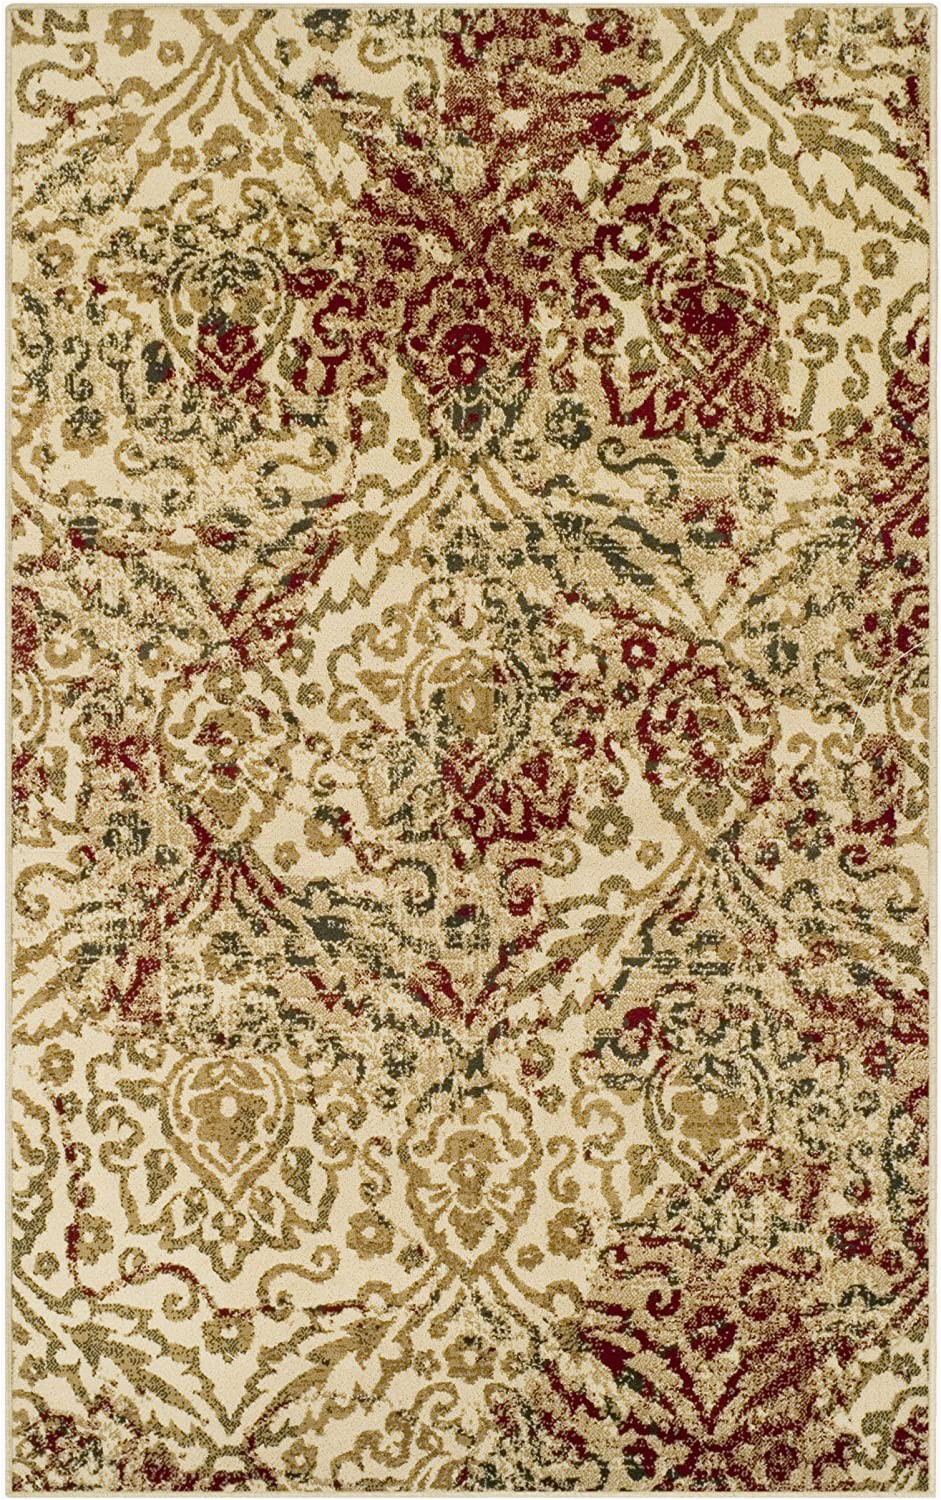 6 Rug Superior Ophelia Collection Area Rug Cream 10mm Pile with